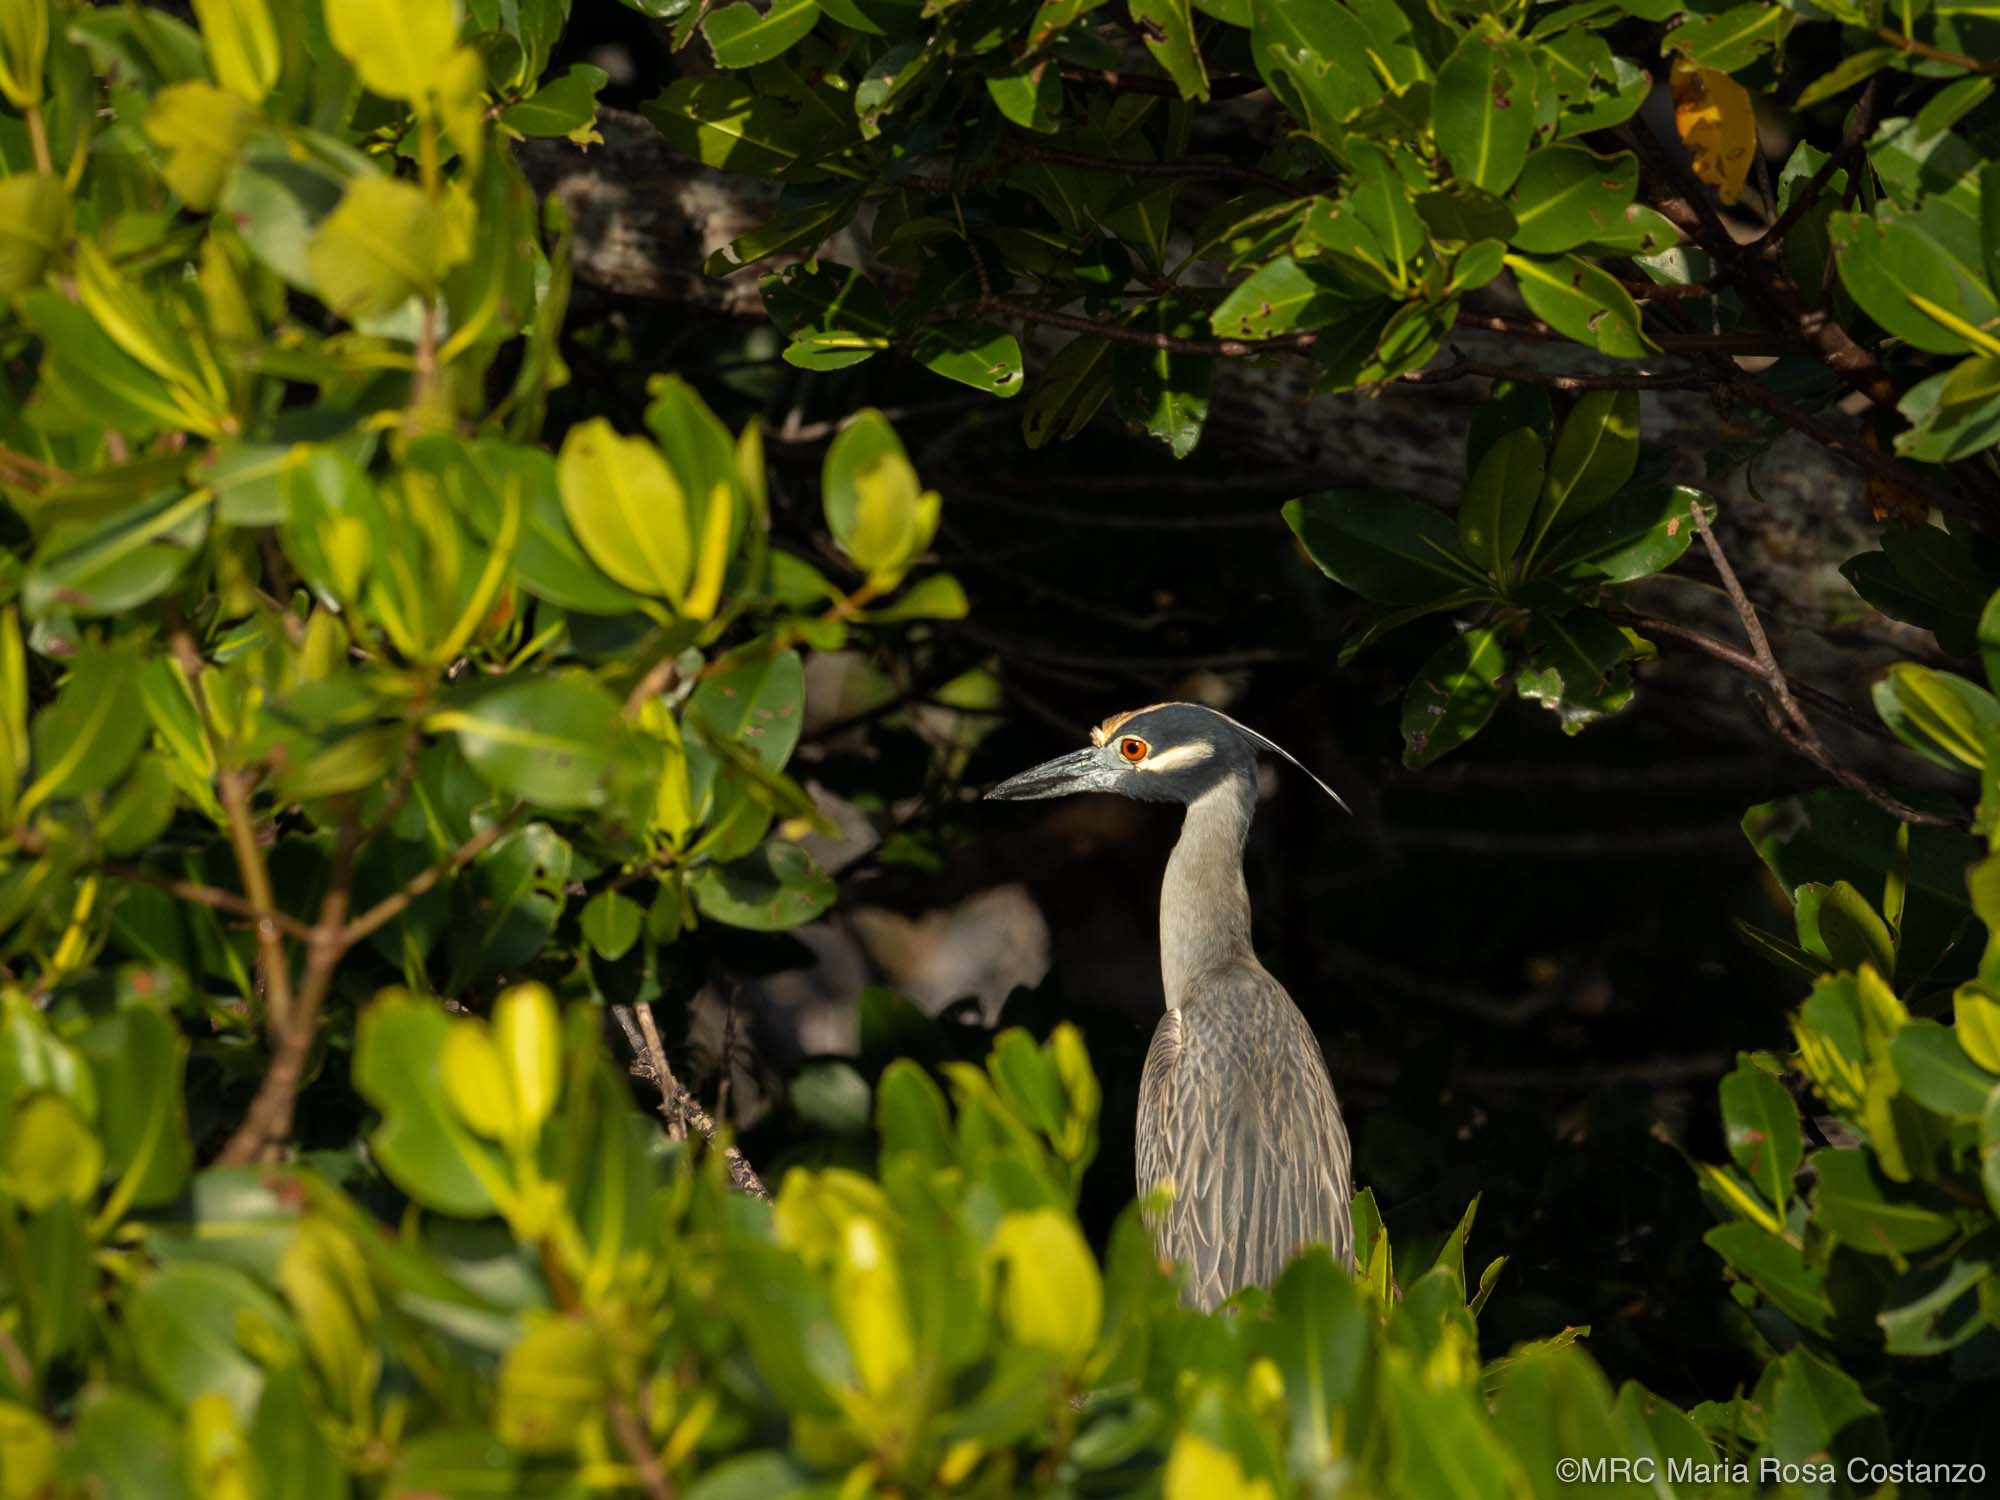 Yellow-crowned Night-heron photographed by Maria Rosa Costanzo, student with Potter School of Photography. Photo created on safari in Everglades National Park, Florida, USA